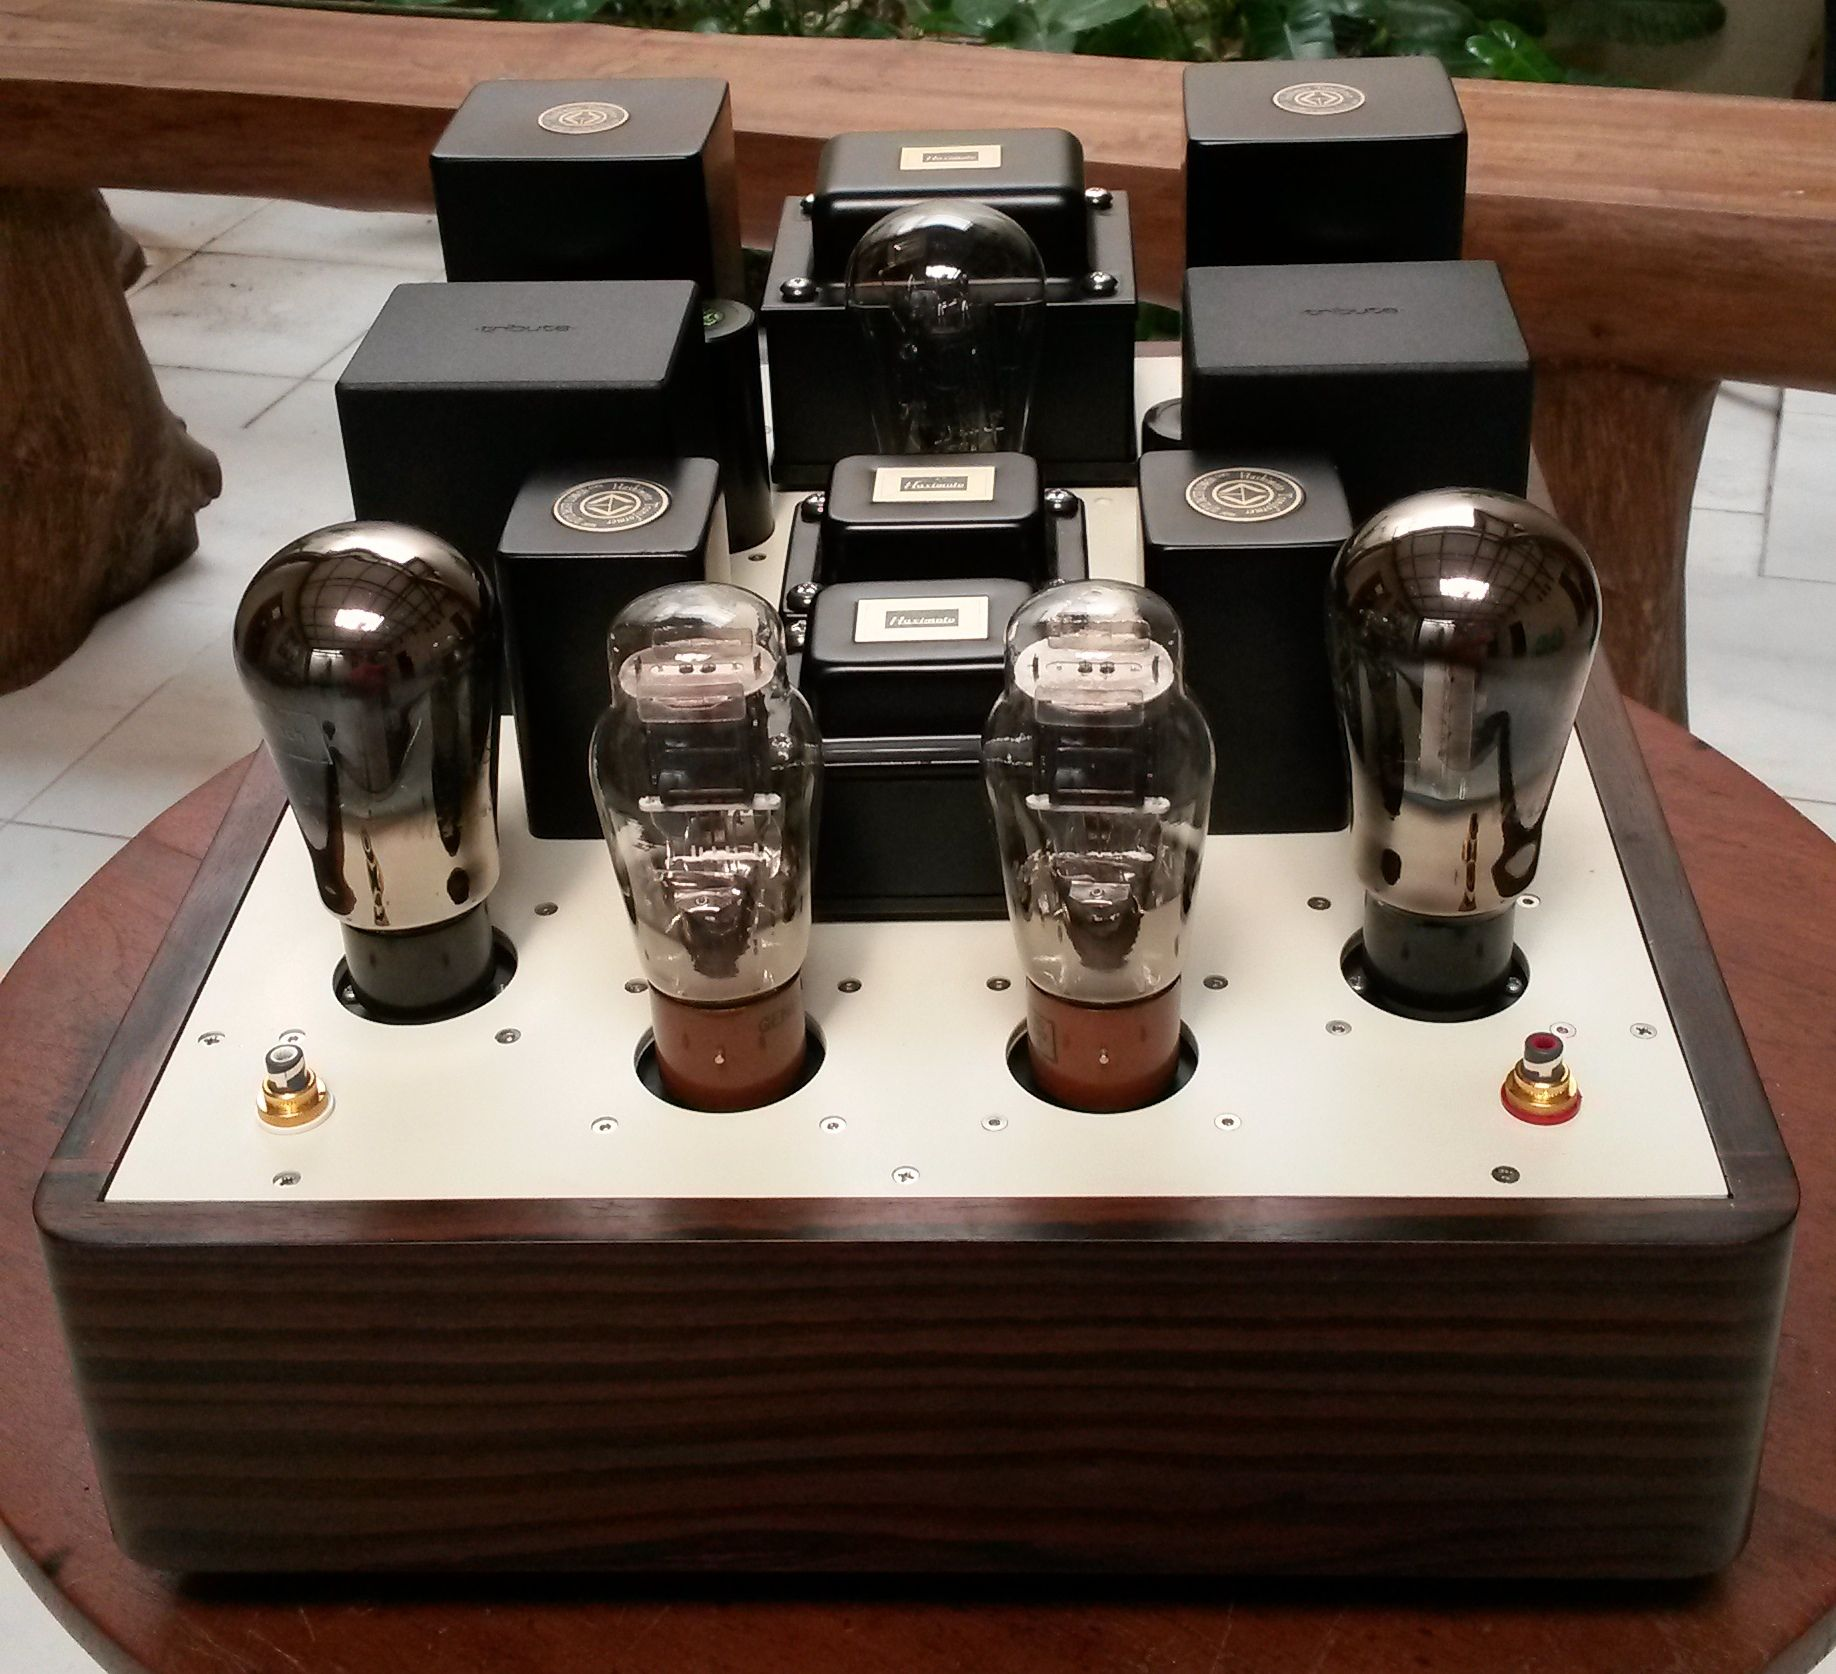 Vt25 Rs241 Power Amp By Suwaned From Indonesia